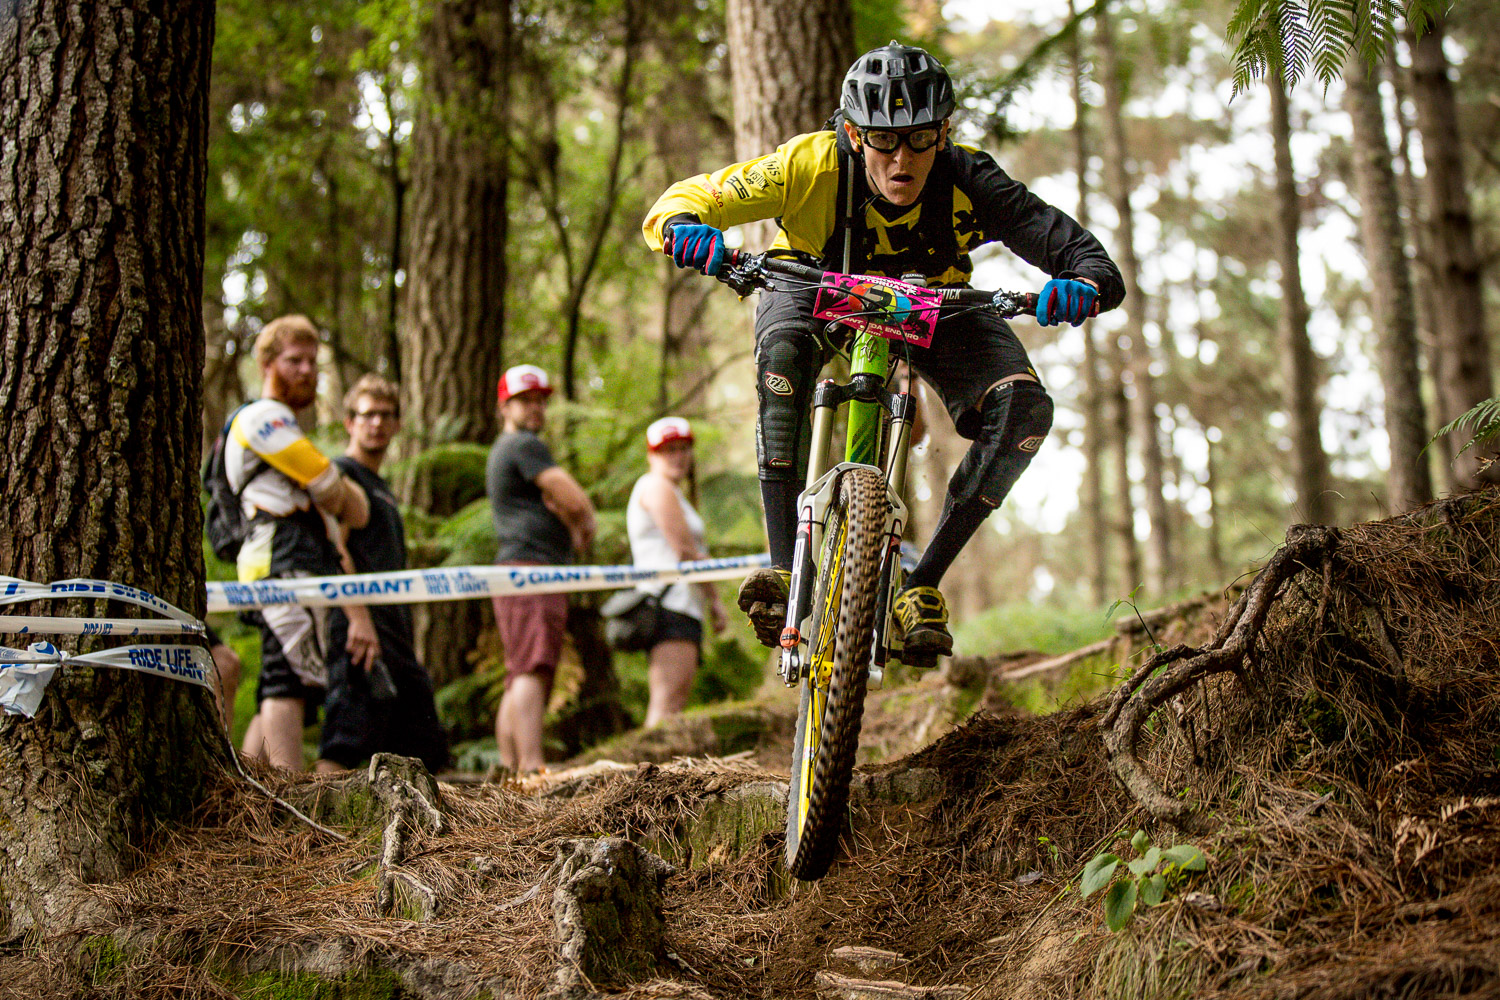 Chausson was slow to recover after winning the opening round of the 2015 Enduro World Series at Crankworx Rotorua, New Zealand.